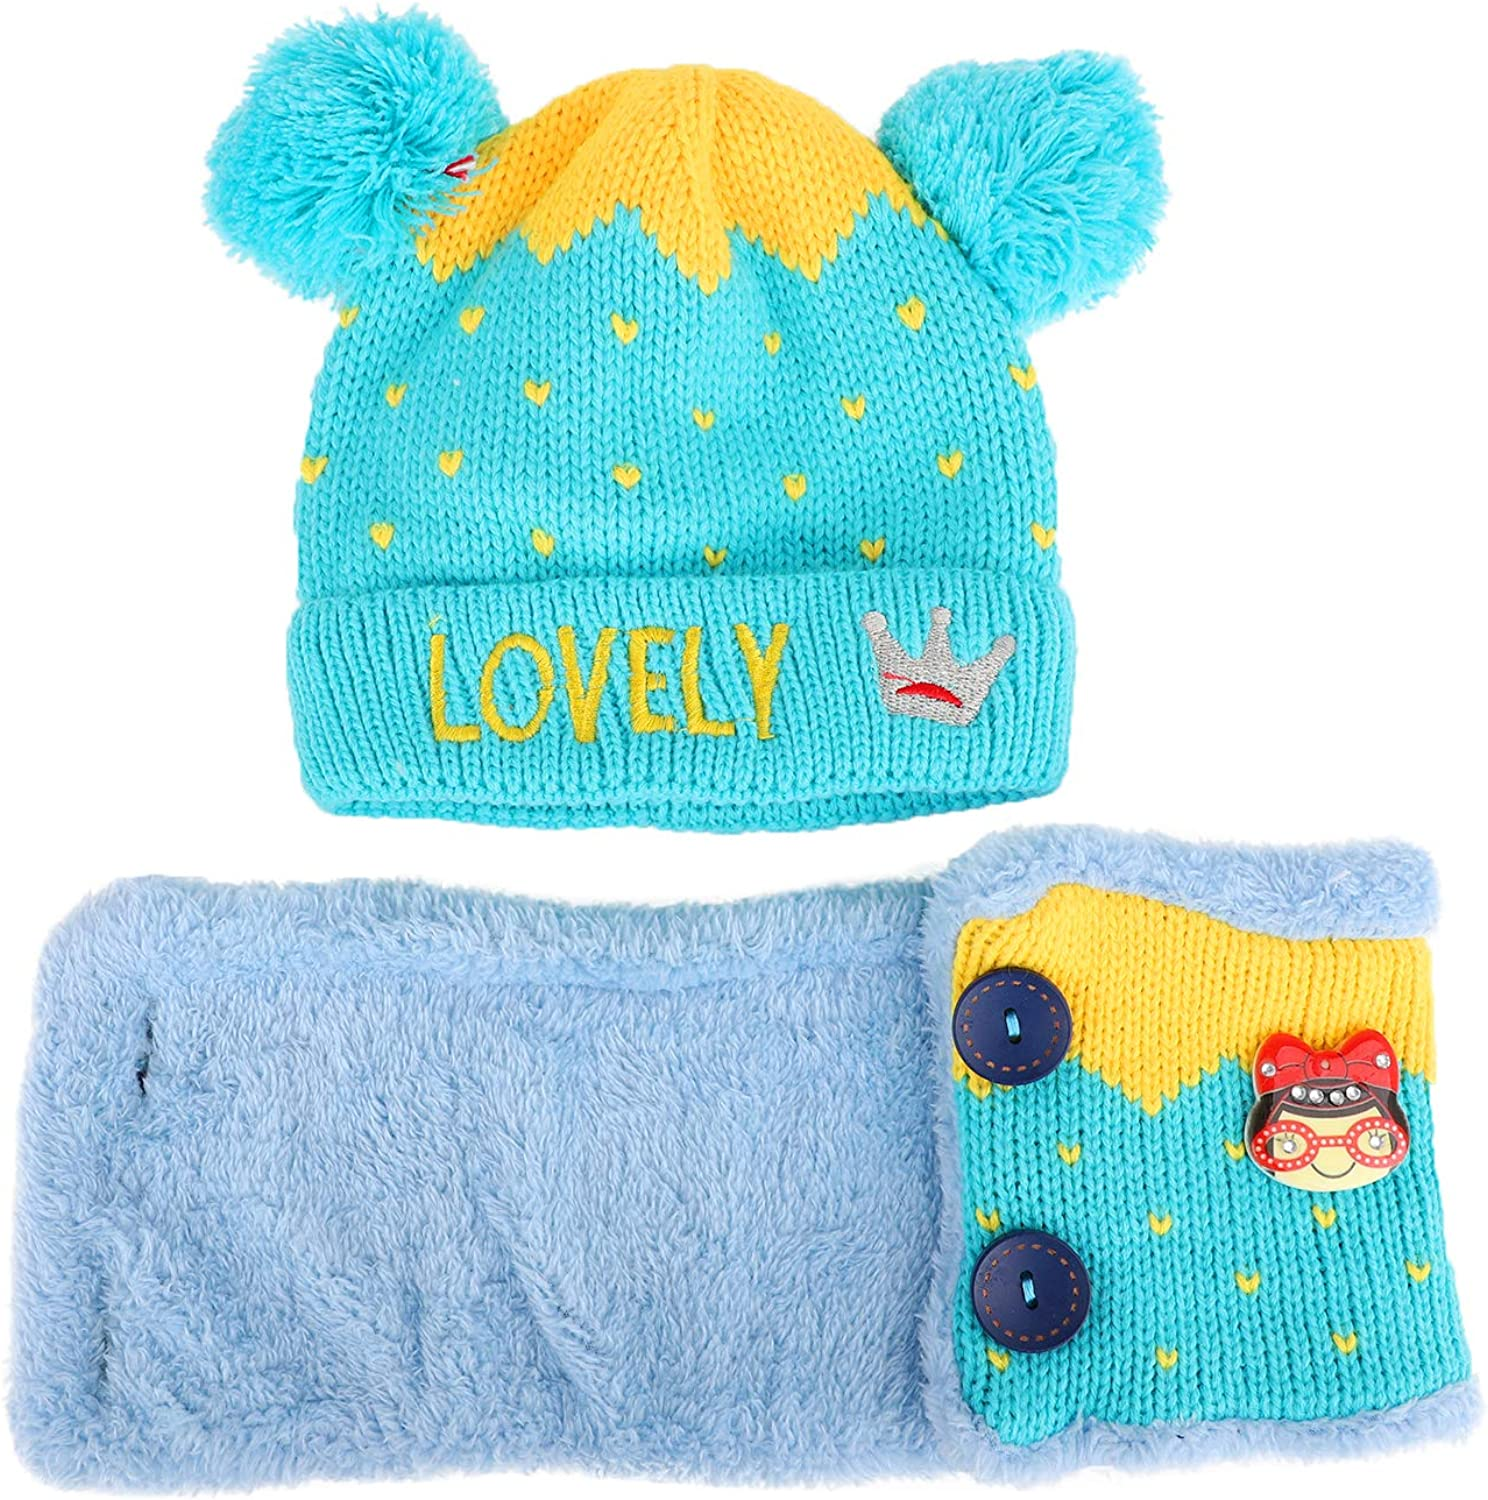 Scarf Neck Warmer for 0-3Y Babies Tabpole Infant Toddler Winter Knitted Beanie Hat